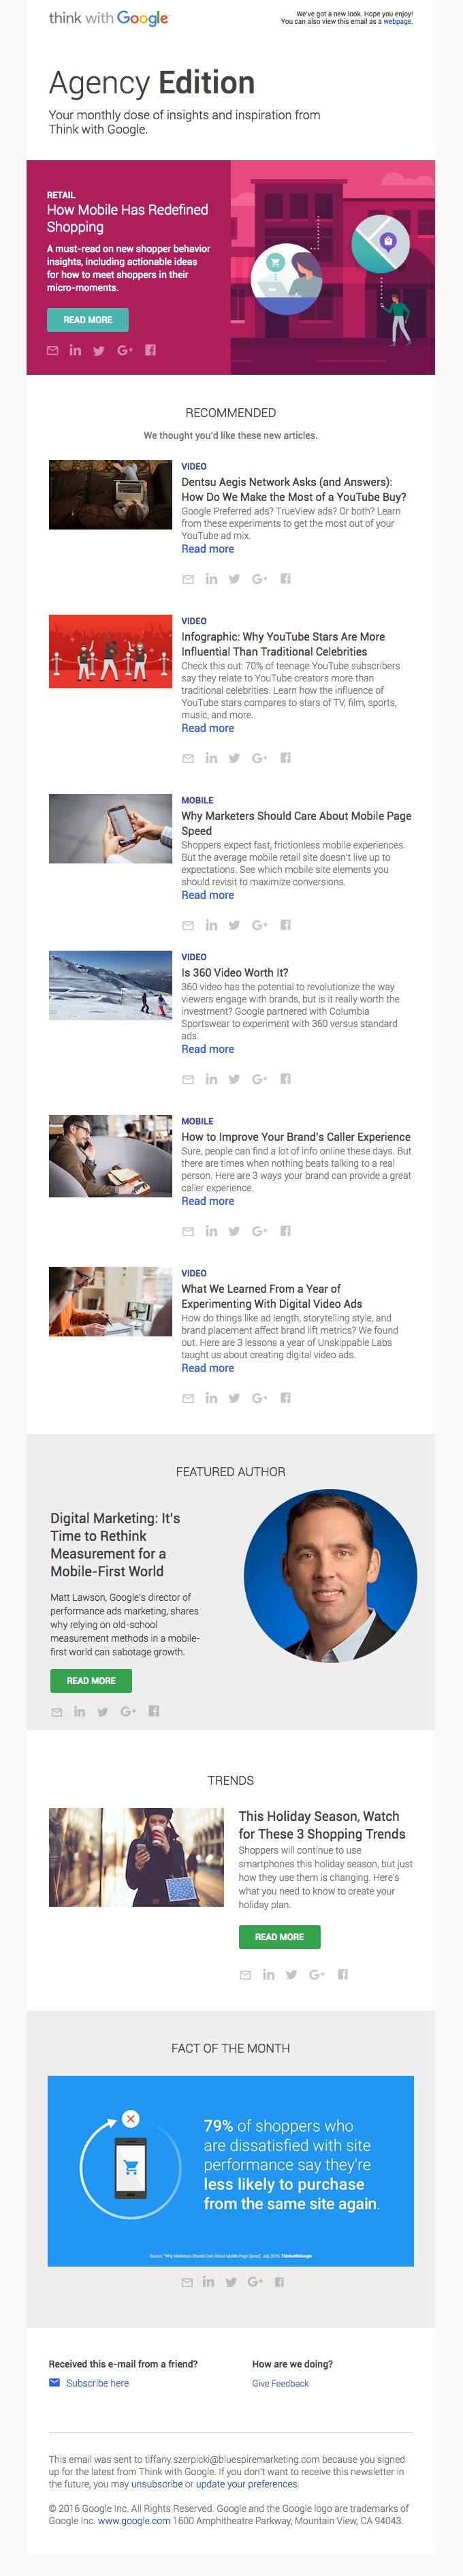 Popular youtube design star html html html html html html html - The Best Email Designs In The Universe That Came Into My Inbox